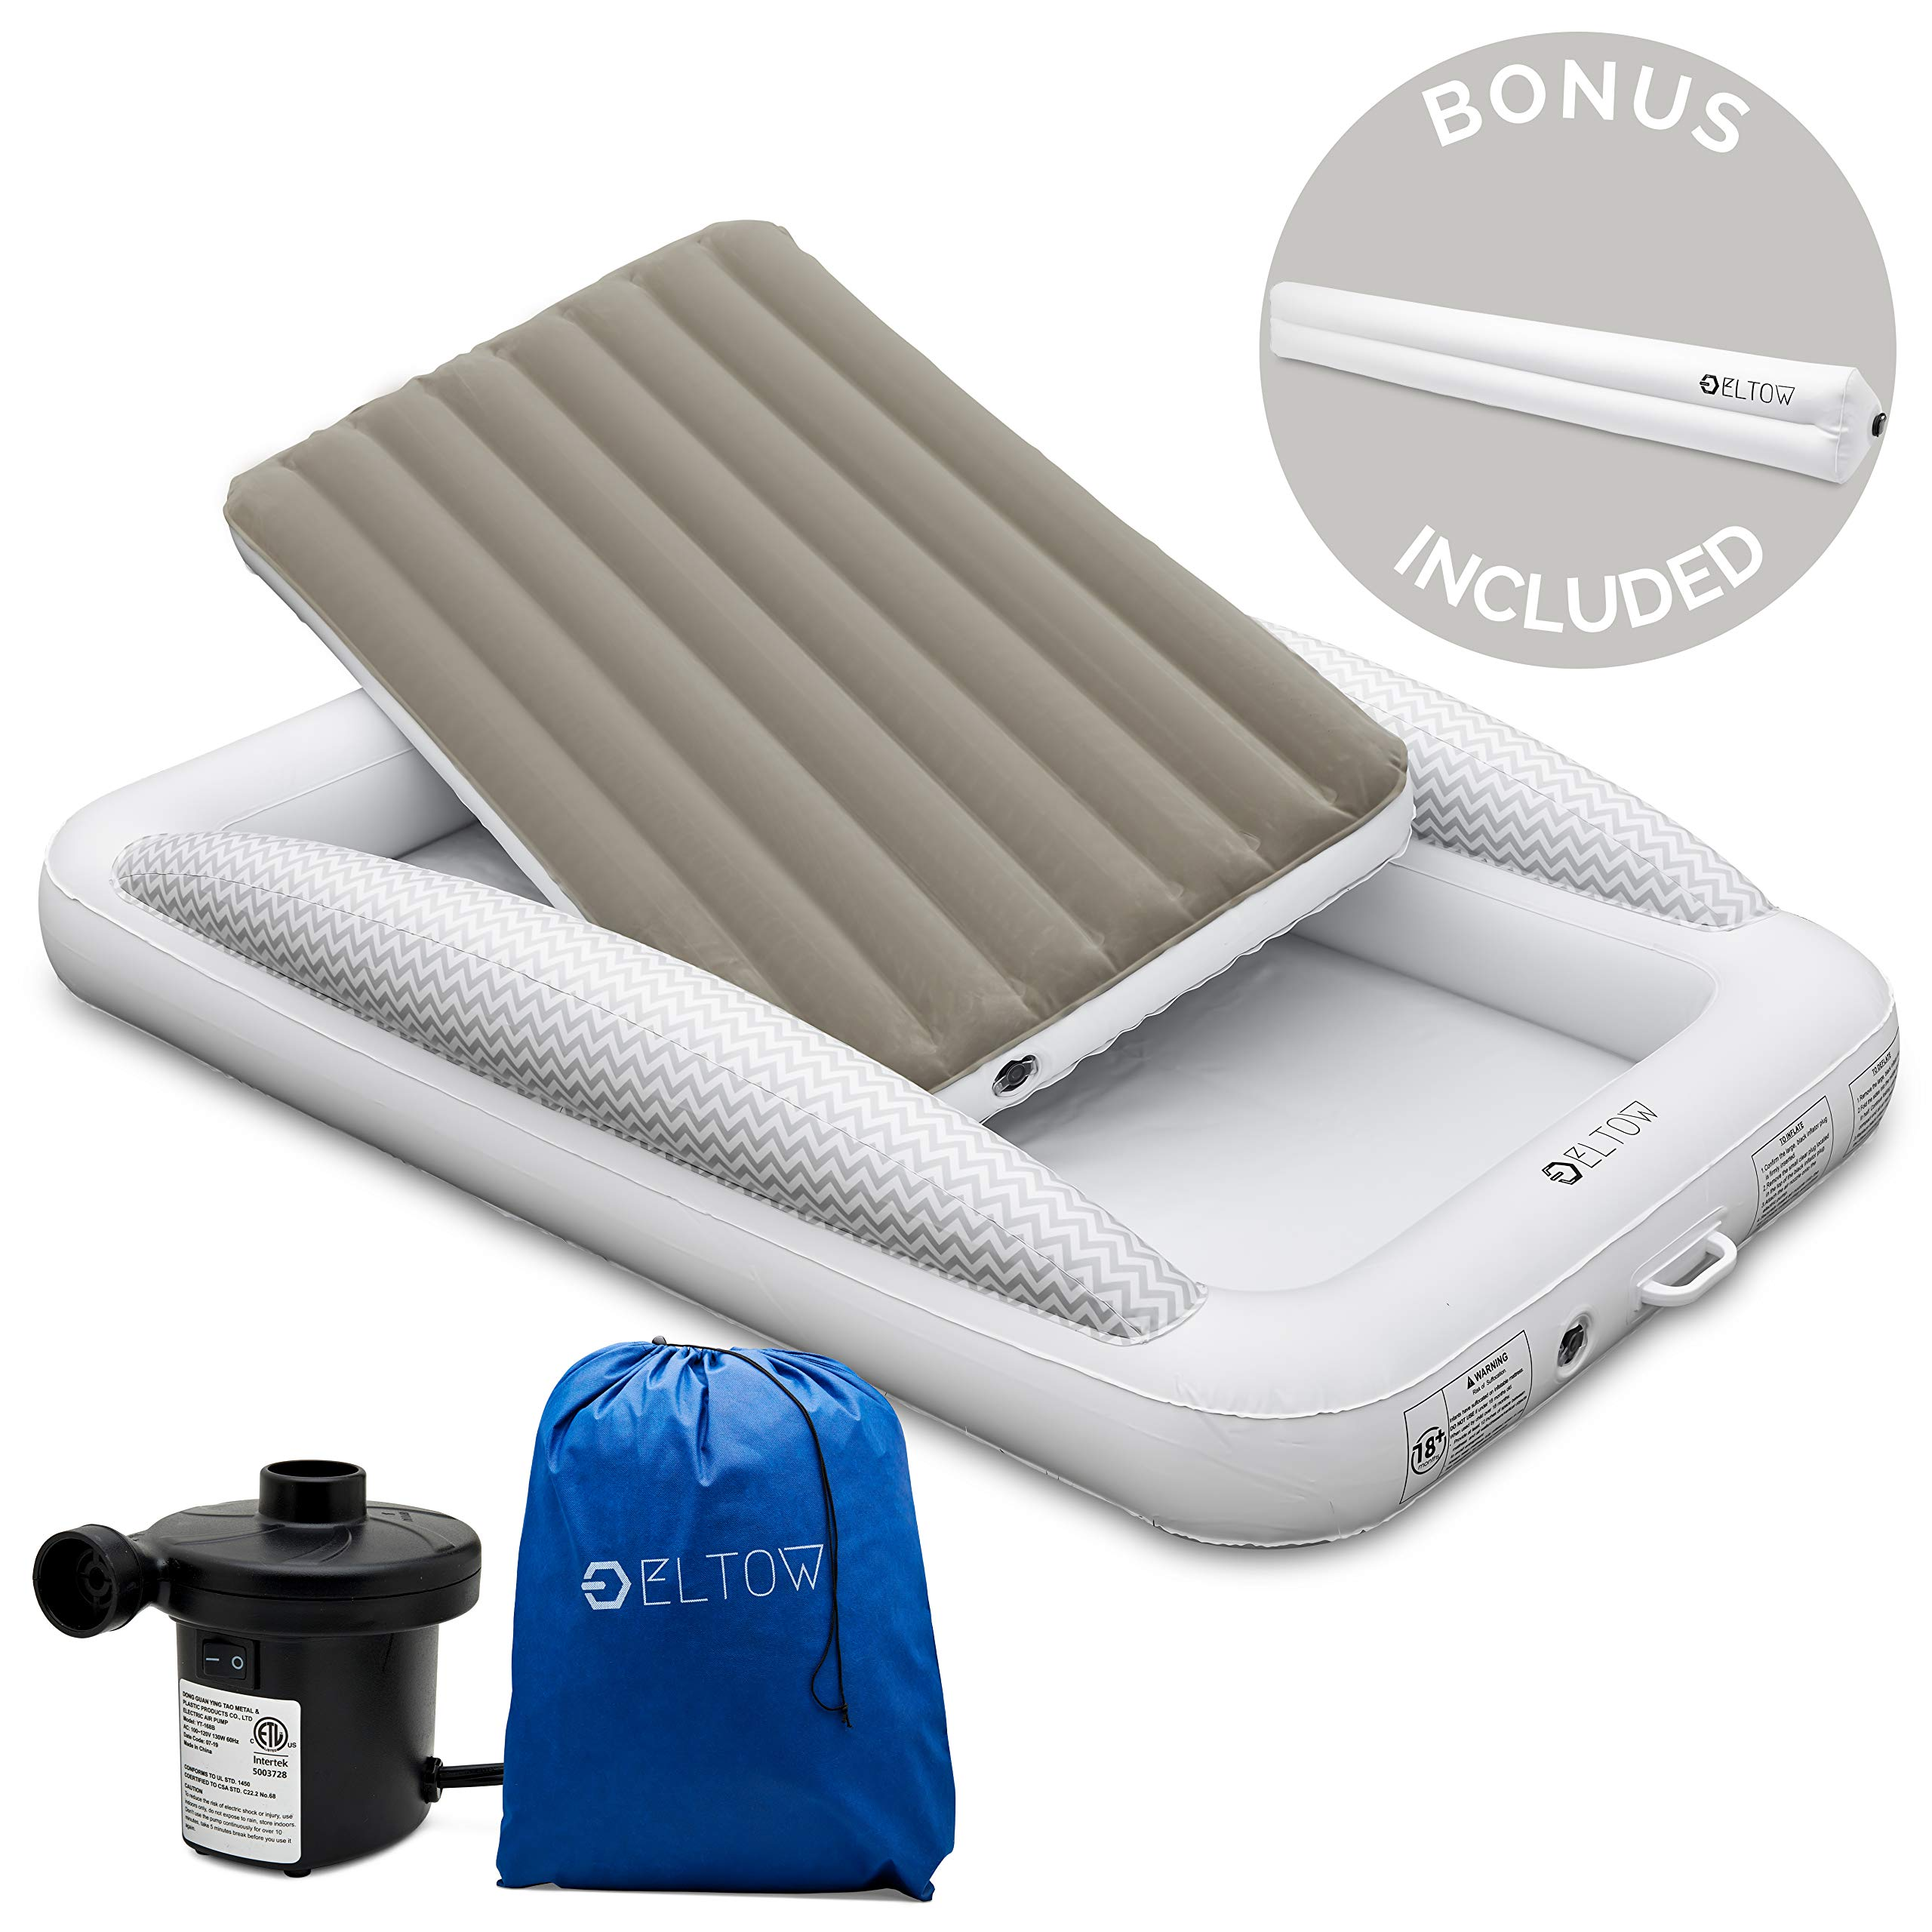 Eltow Inflatable Toddler Air Mattress Bed With Safety Bumper - Portable, Modern Travel Bed, Cot for Toddlers - Perfect For Travel, Camping - Removable Mattress, High Speed Pump and Travel Bag Included by ELTOW